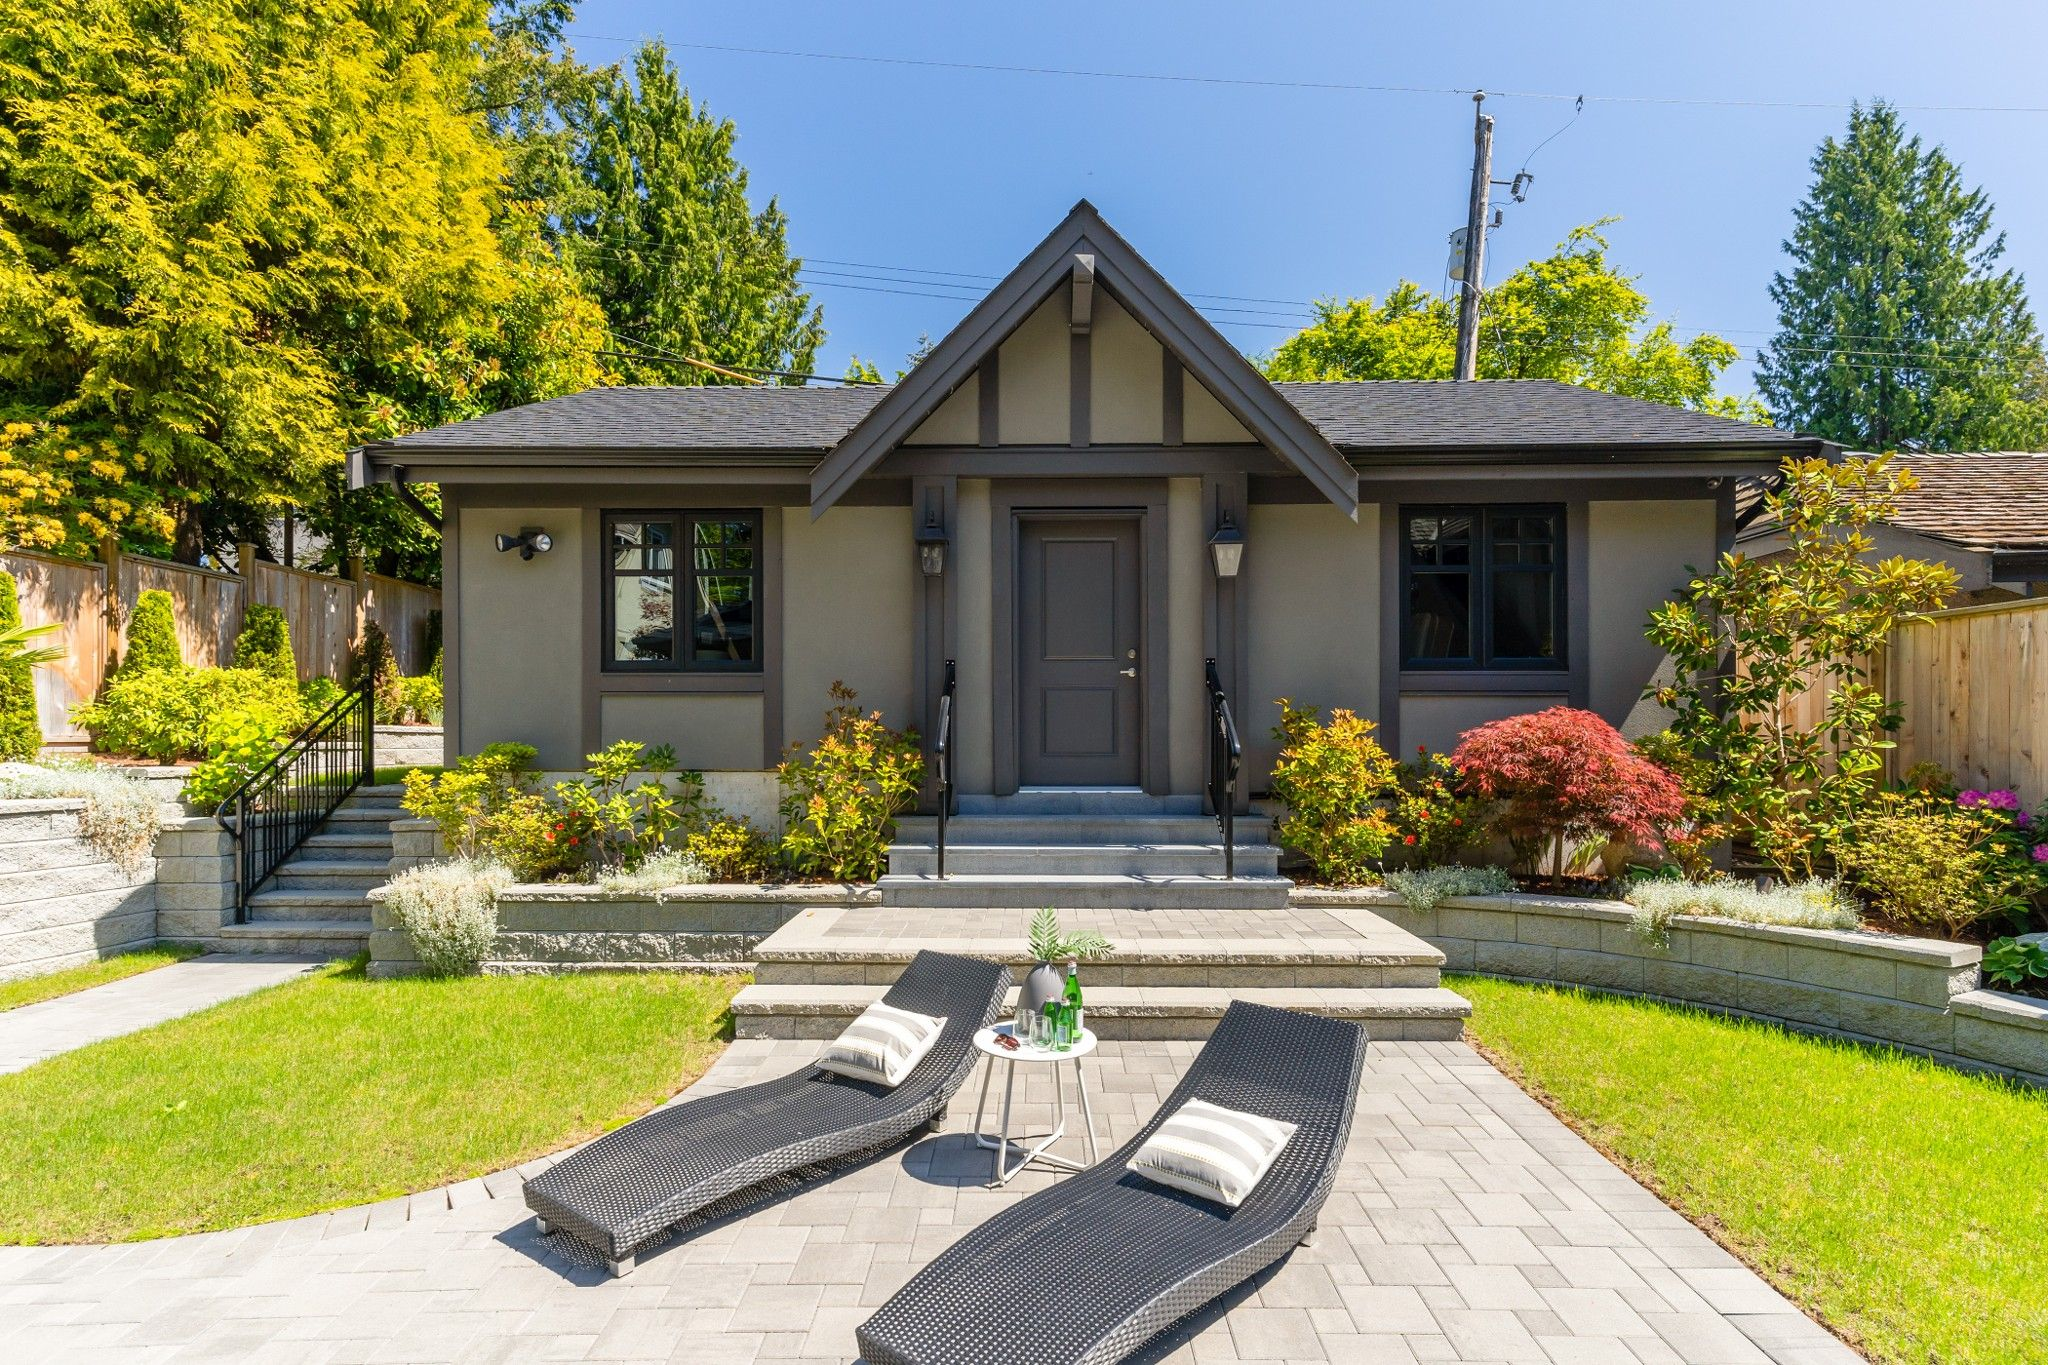 Photo 45: Photos: 5756 ALMA STREET in VANCOUVER: Southlands House for sale (Vancouver West)  : MLS®# R2588229